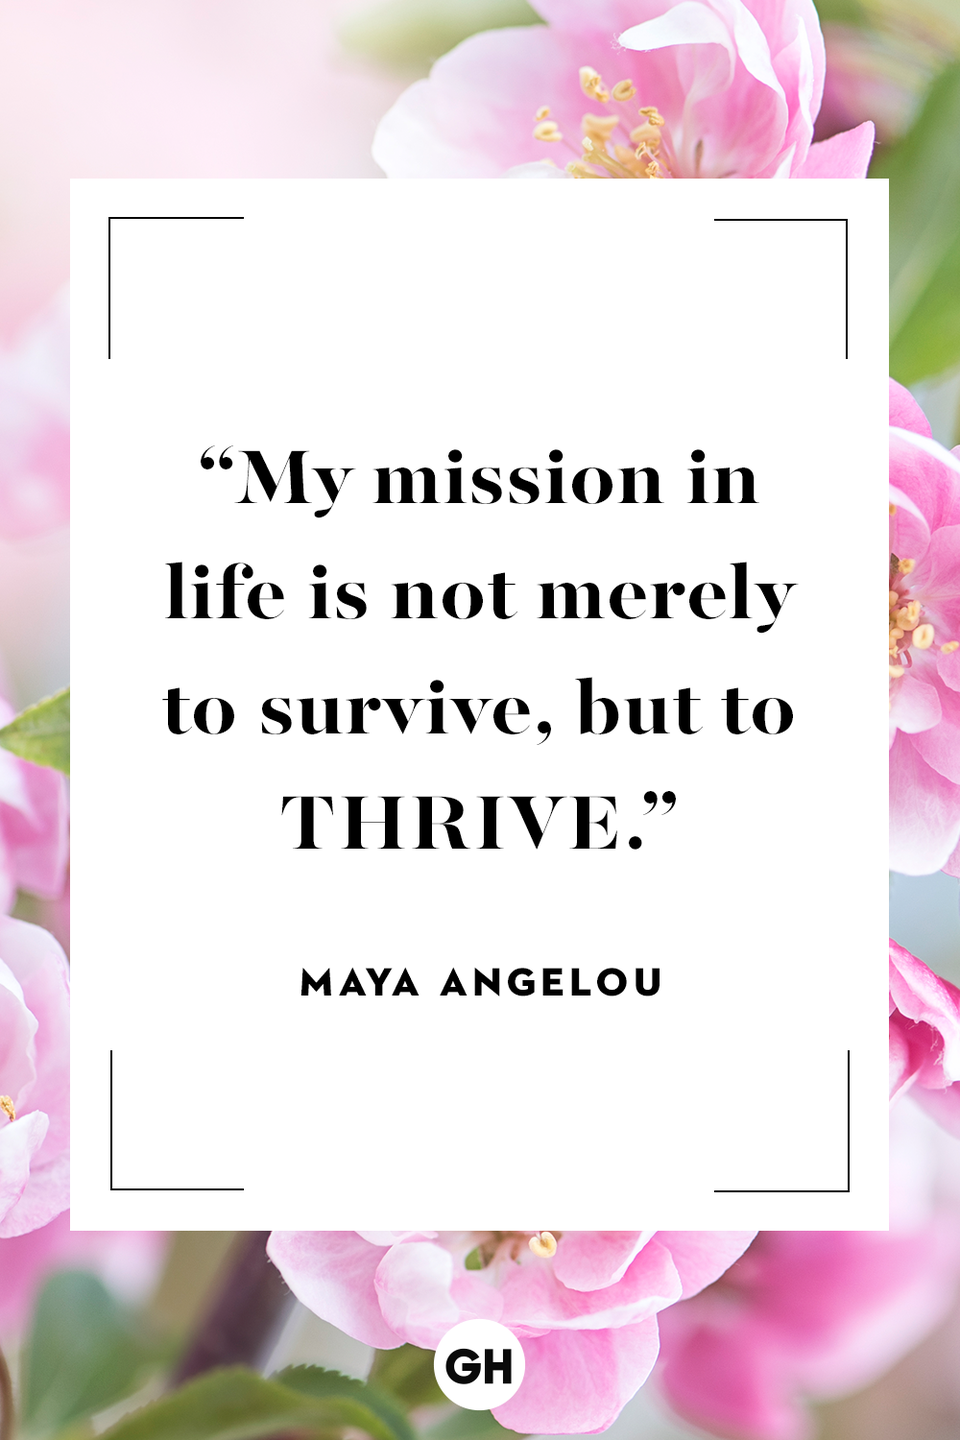 <p>My mission in life is not merely to survive, but to thrive.</p>